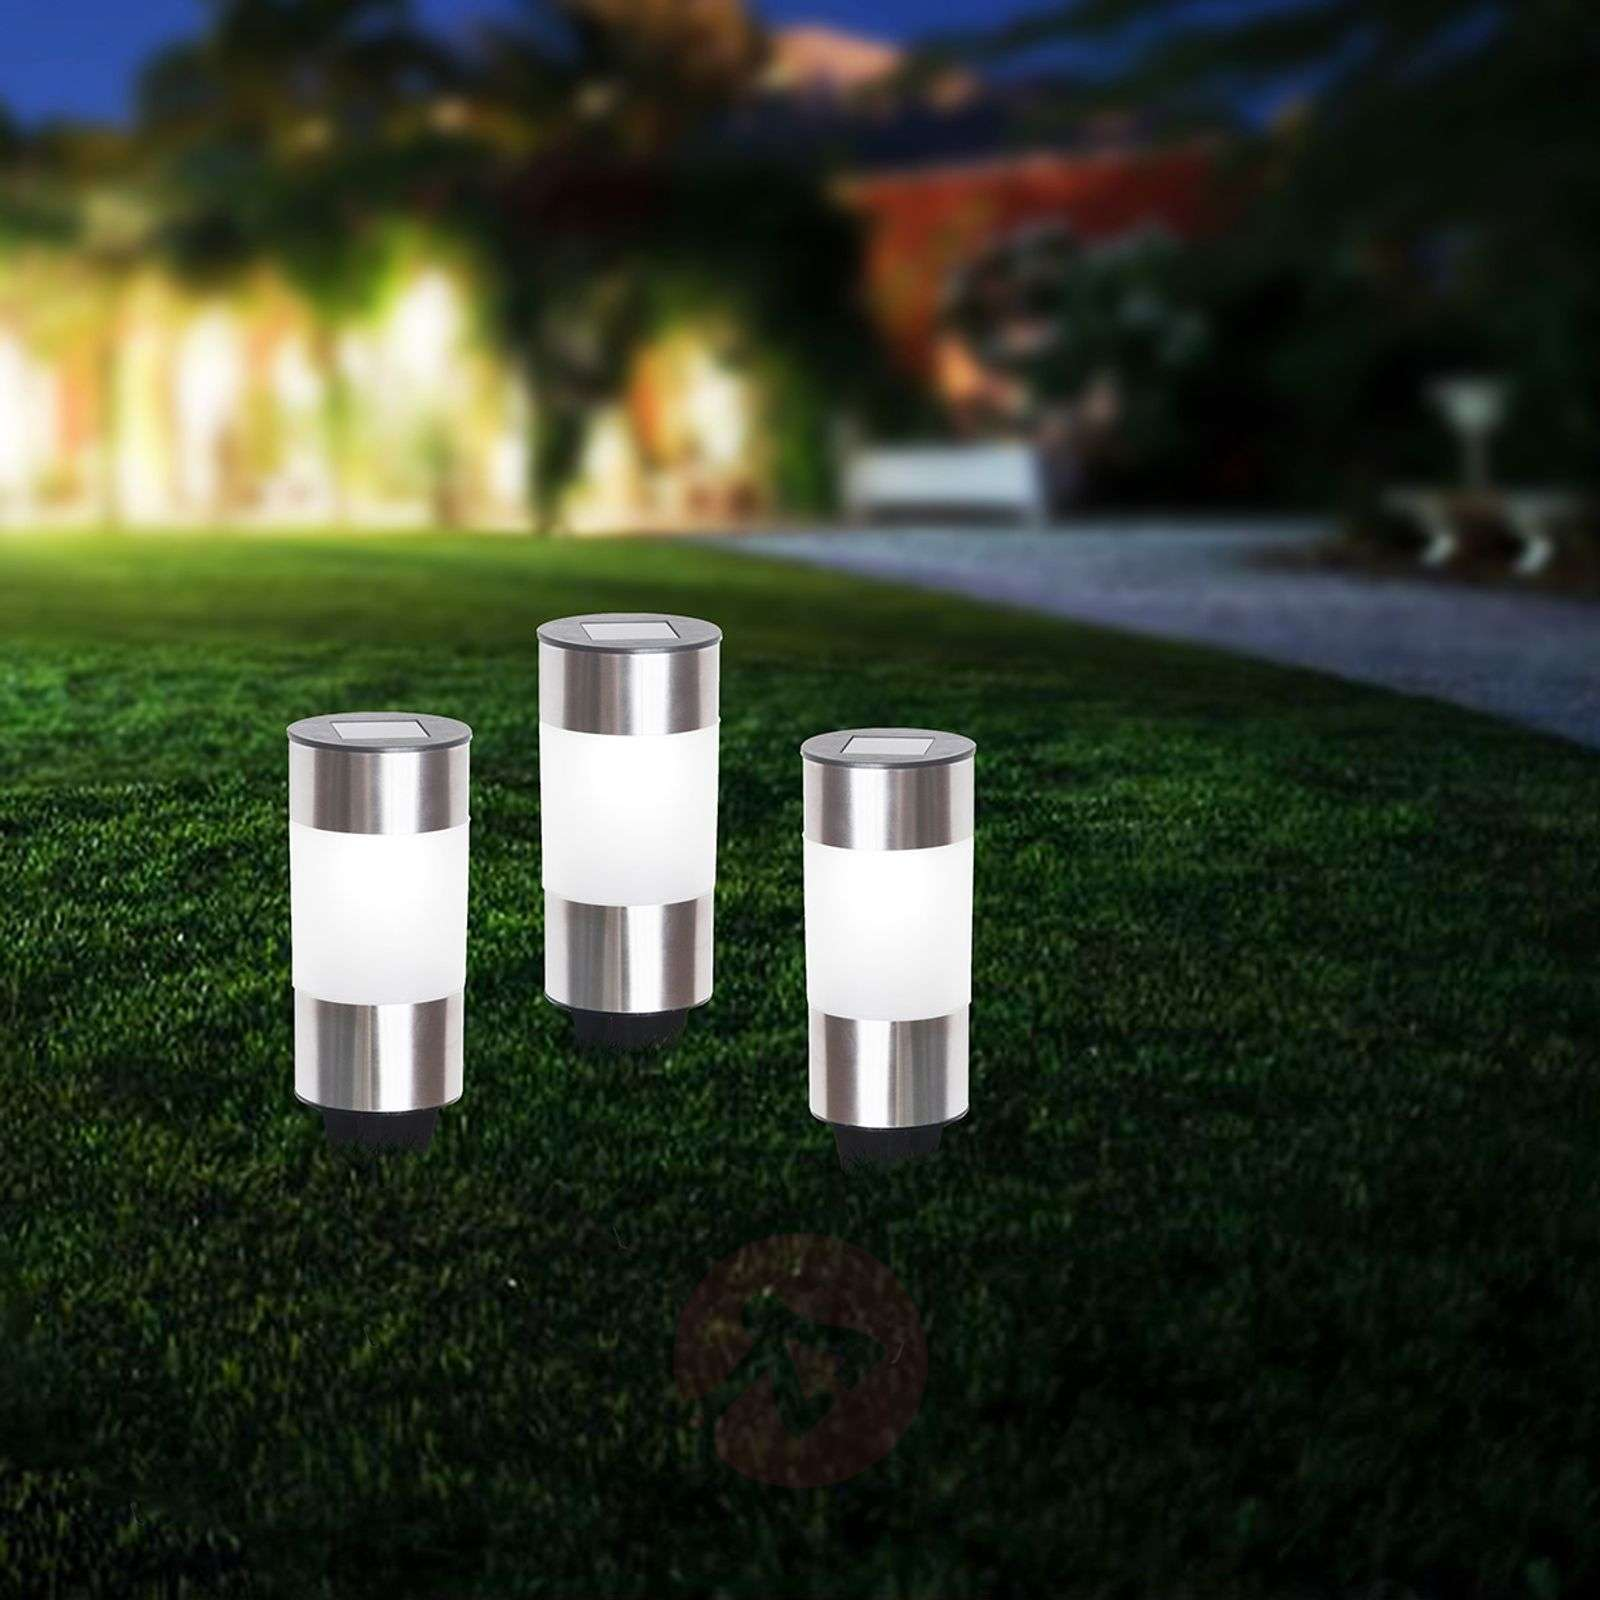 Round solar pillar light Valea, stainless steel-4014998-01